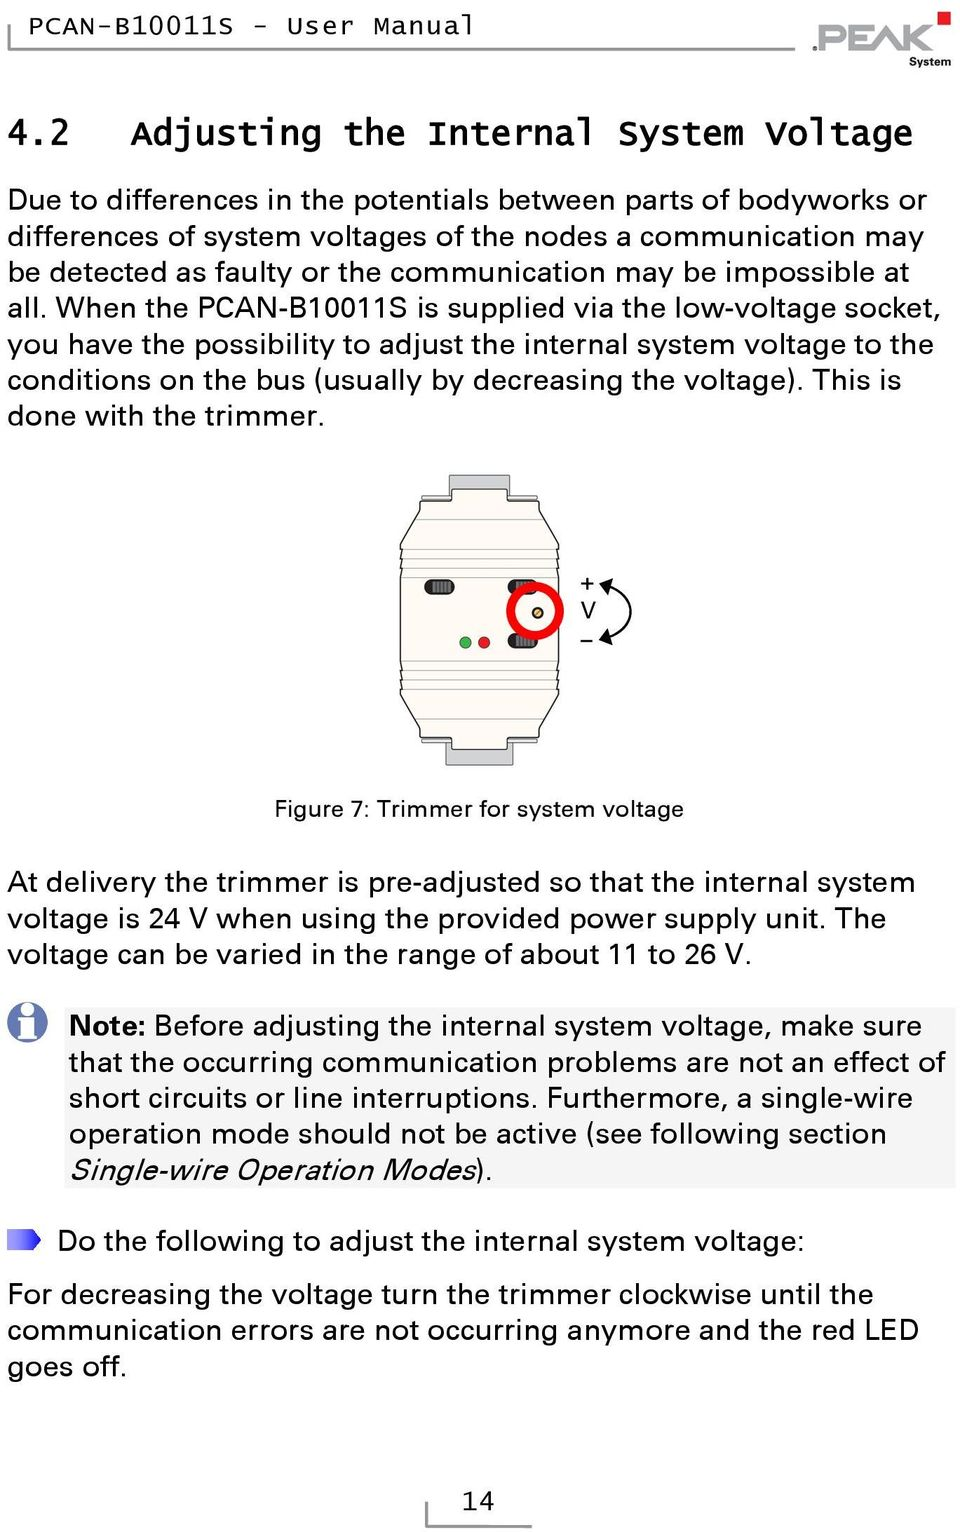 When the PCAN-B10011S is supplied via the low-voltage socket, you have the possibility to adjust the internal system voltage to the conditions on the bus (usually by decreasing the voltage).